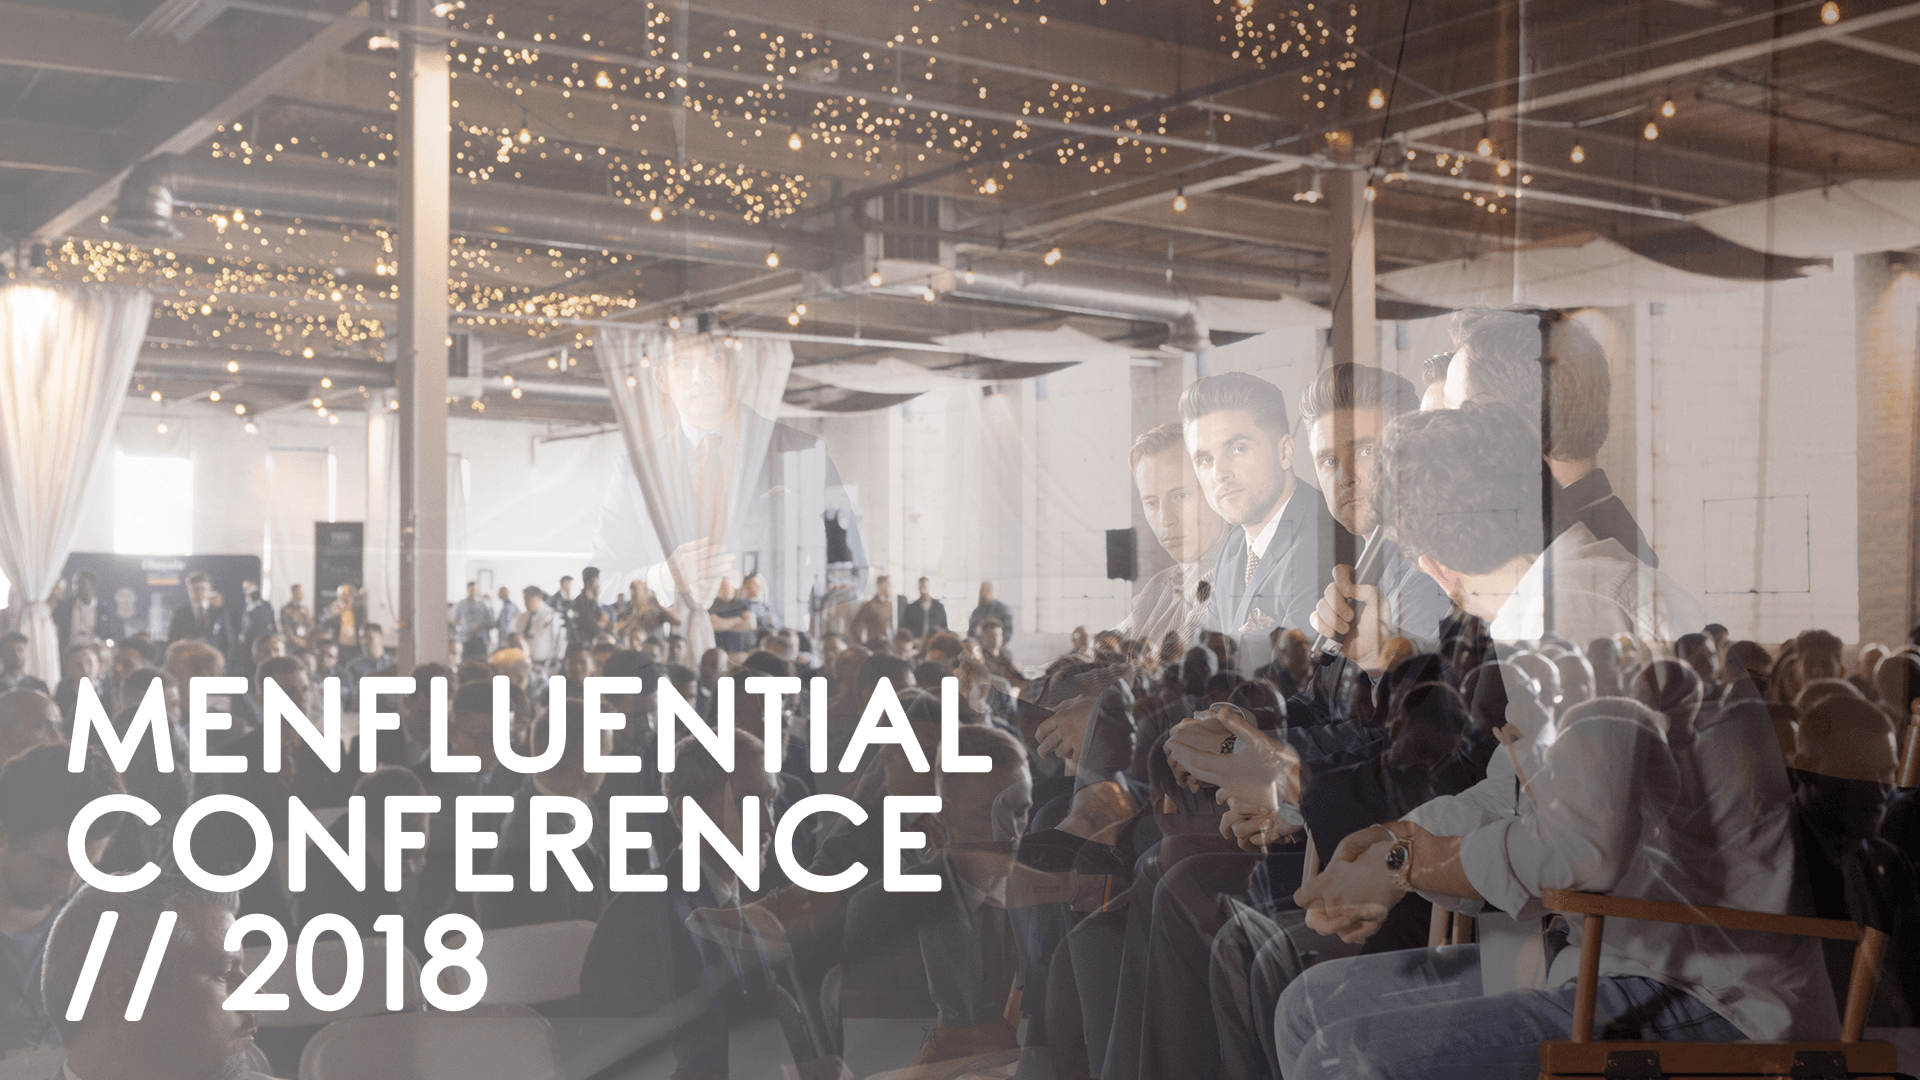 Menfluential Conference 2018: hosted by Alpha M and RealMenRealStyle